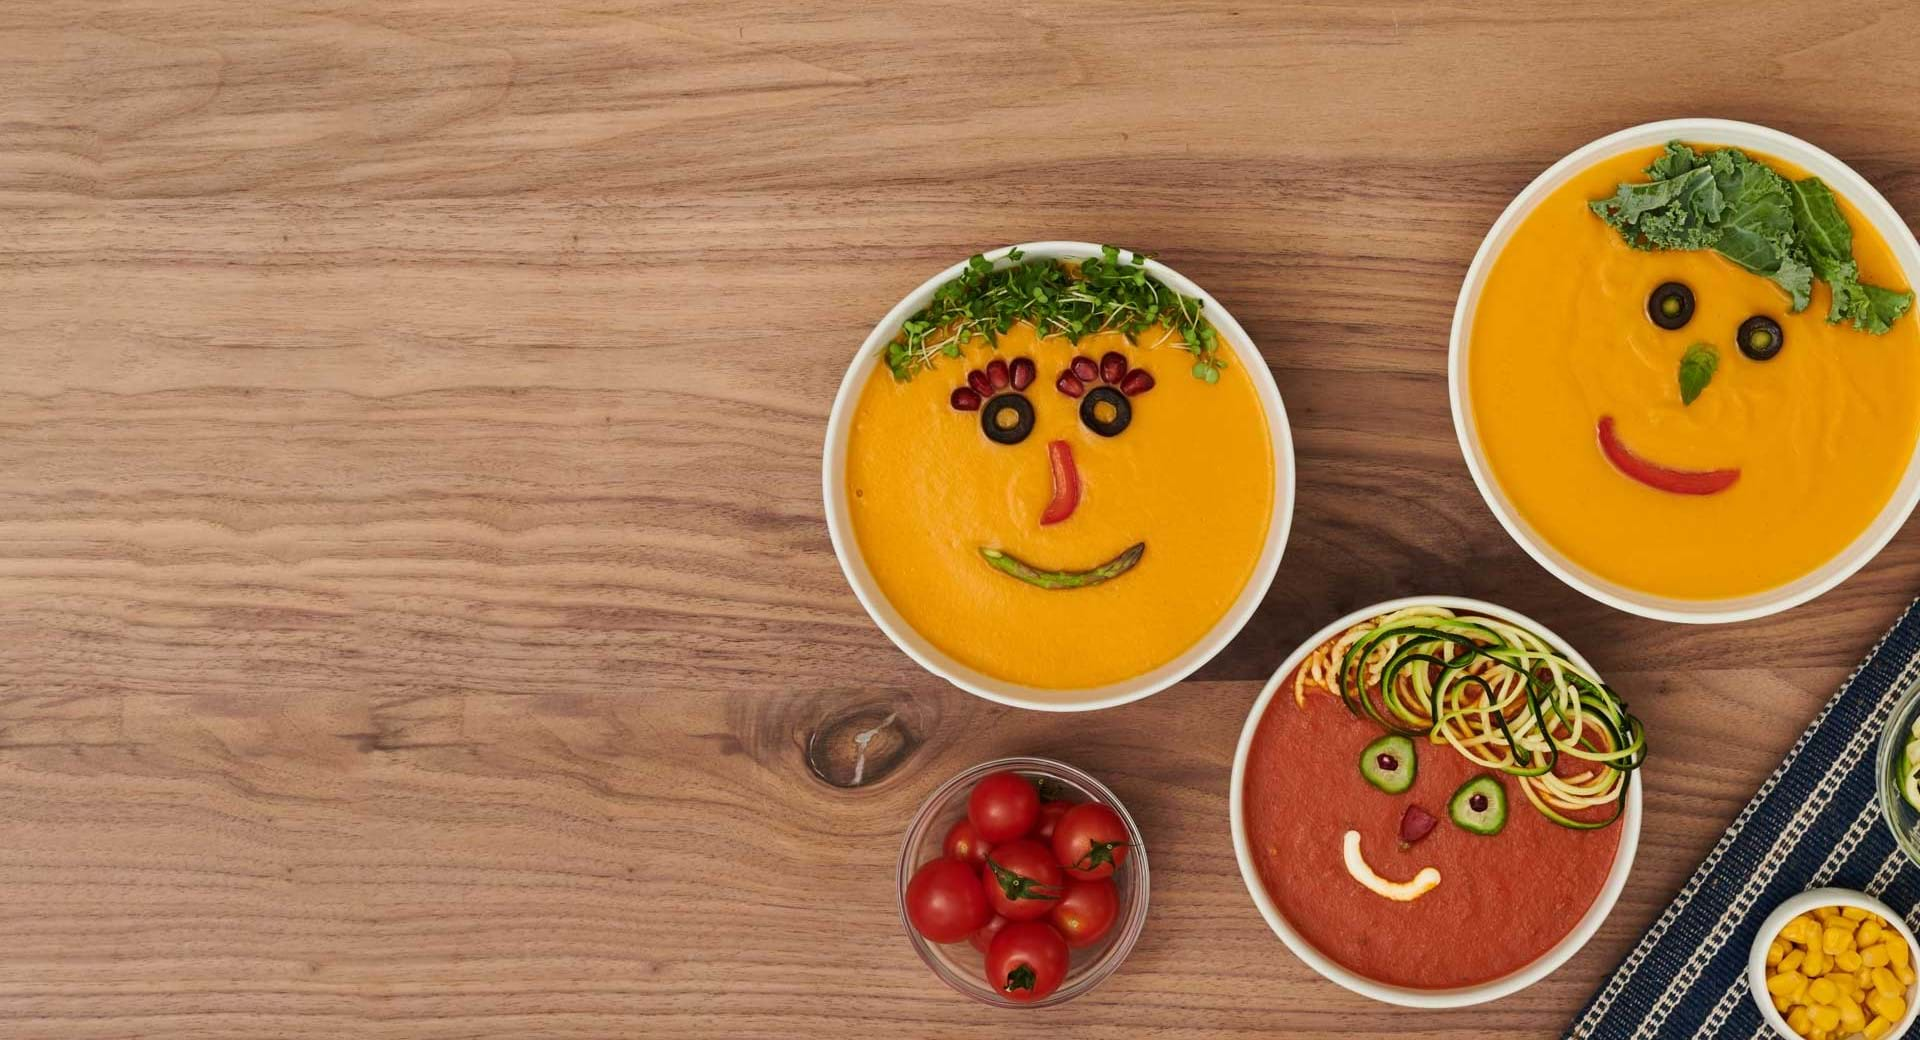 Top your soup with a smile.